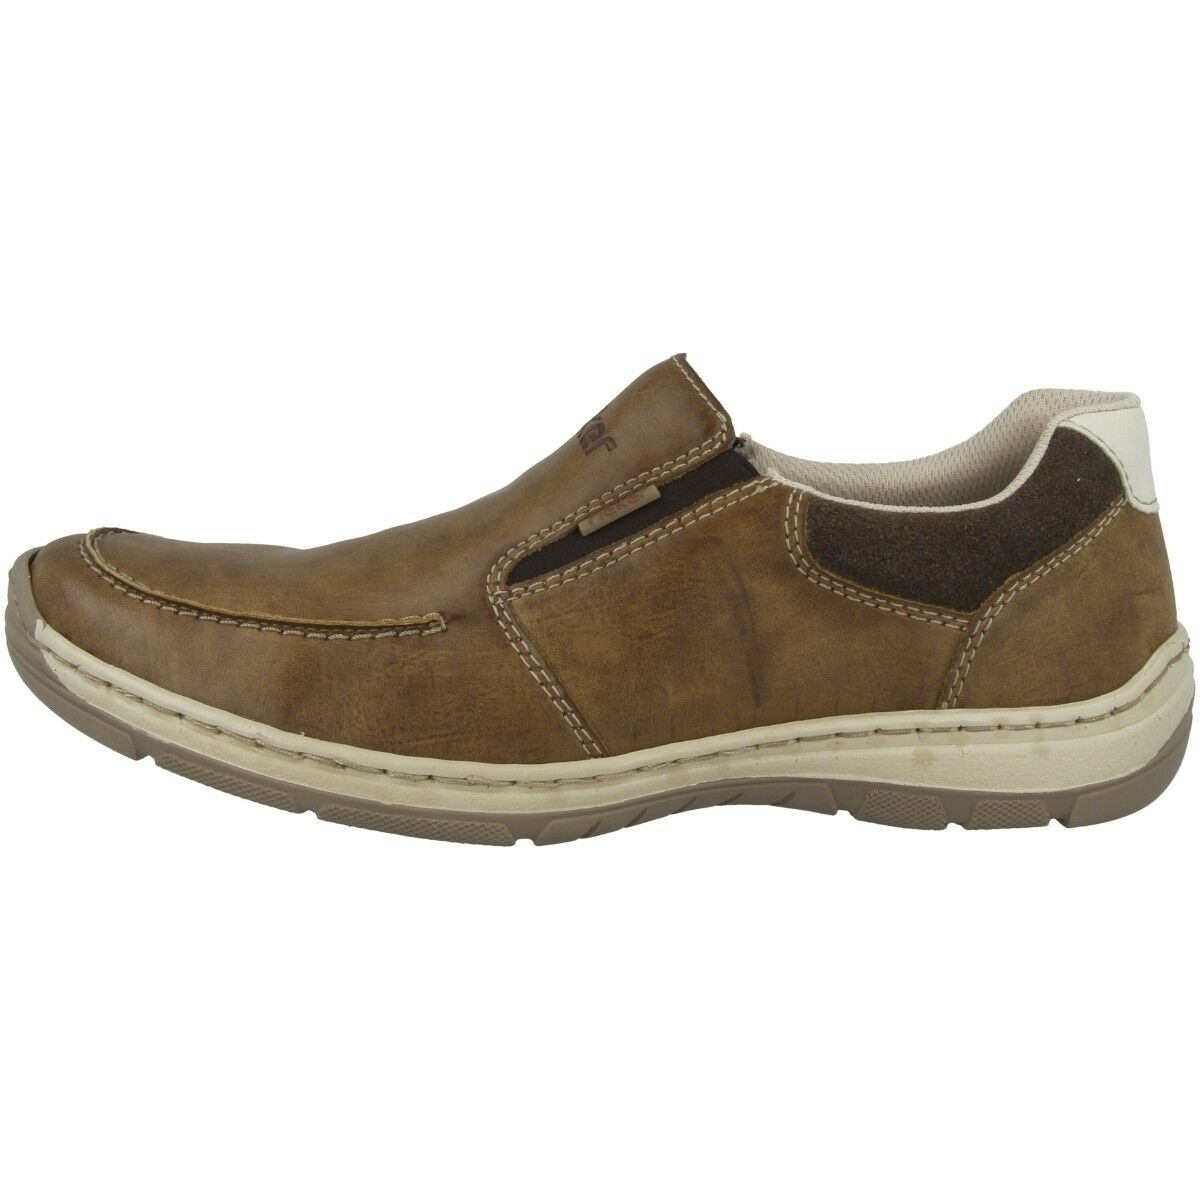 Rieker Elmira-virage-Preston zapatos caballero semi zapato anti estrés Slipper 15260-24